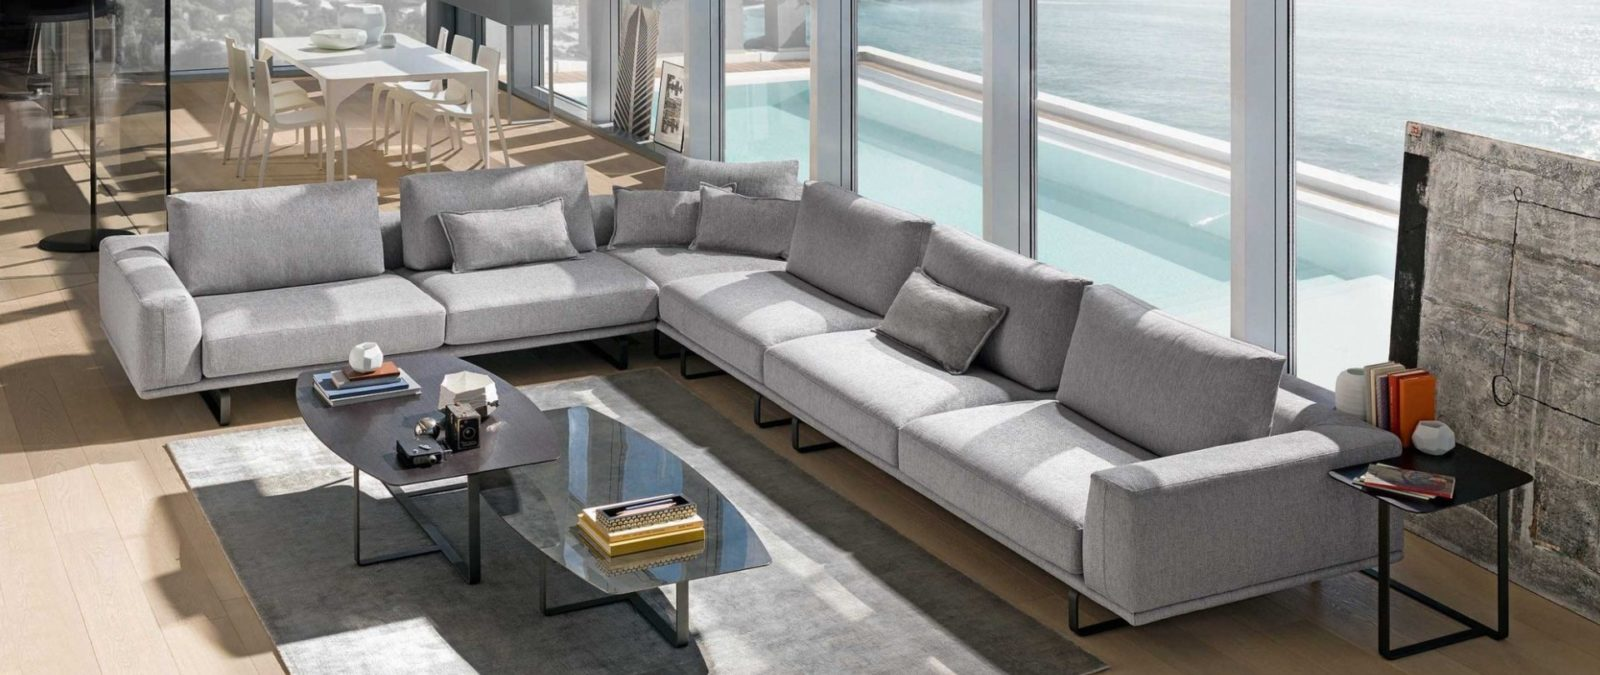 modern furniture Miami